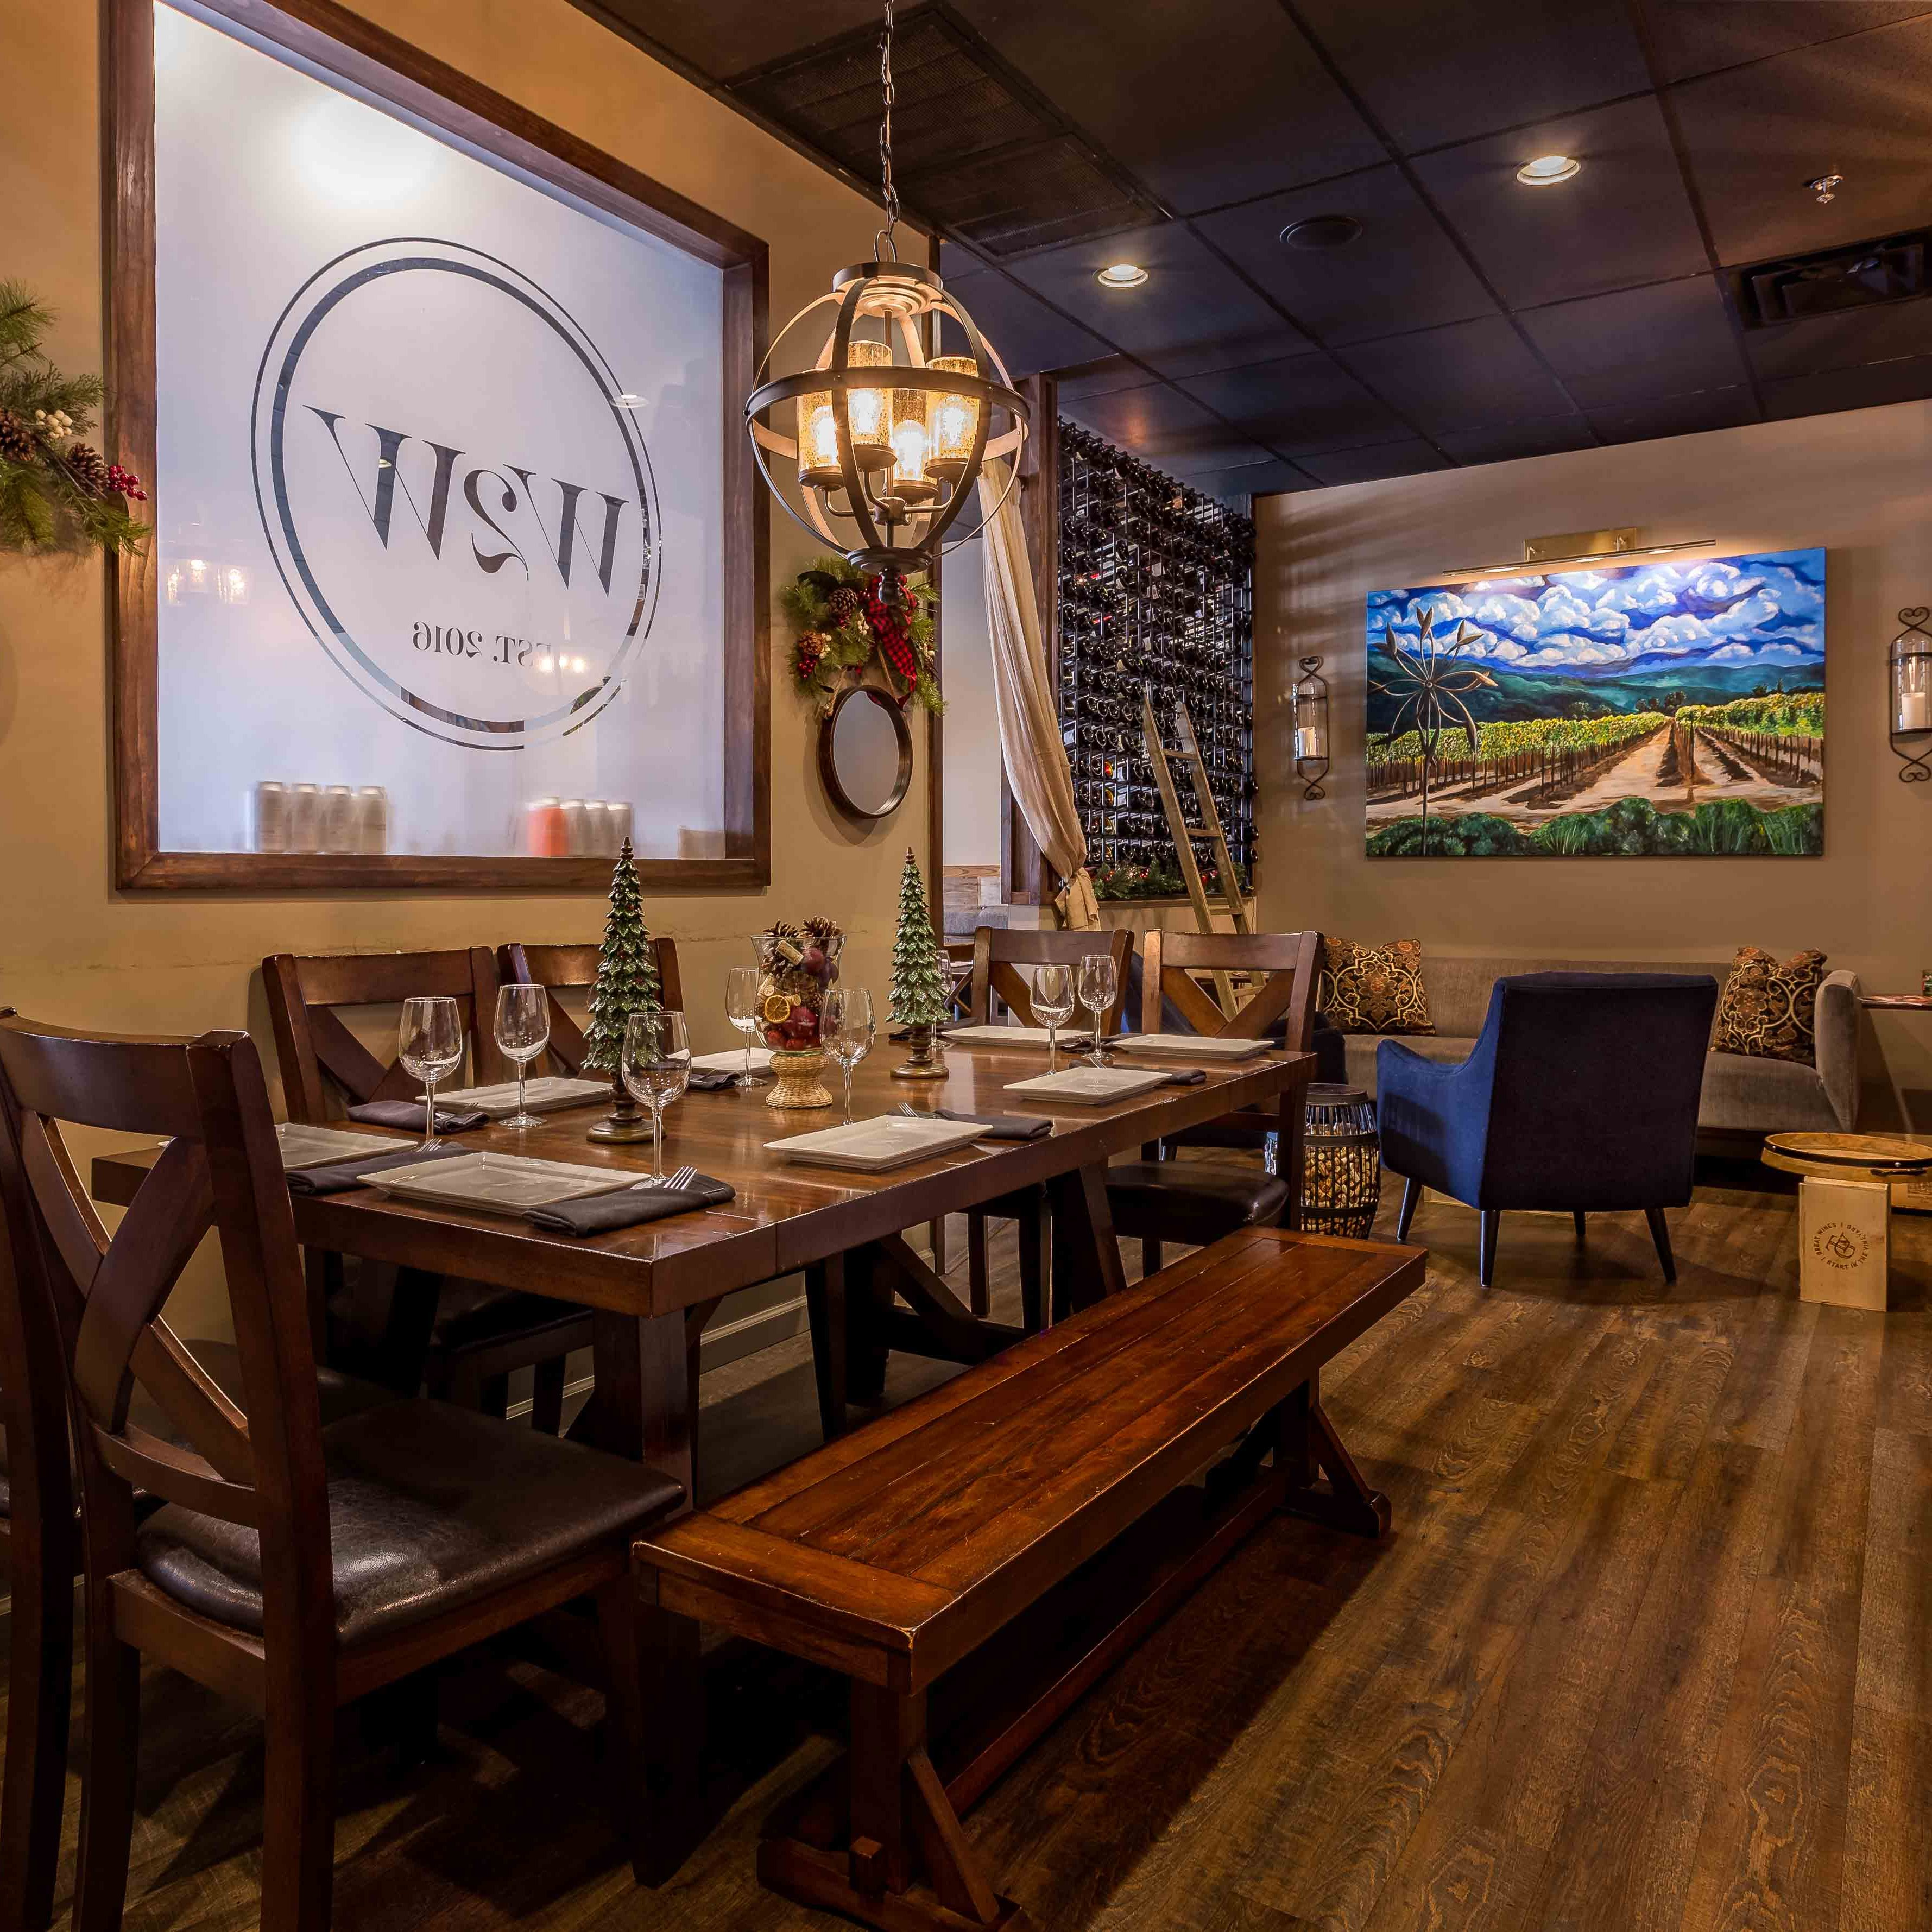 Water into Wine Restaurant Knoxville